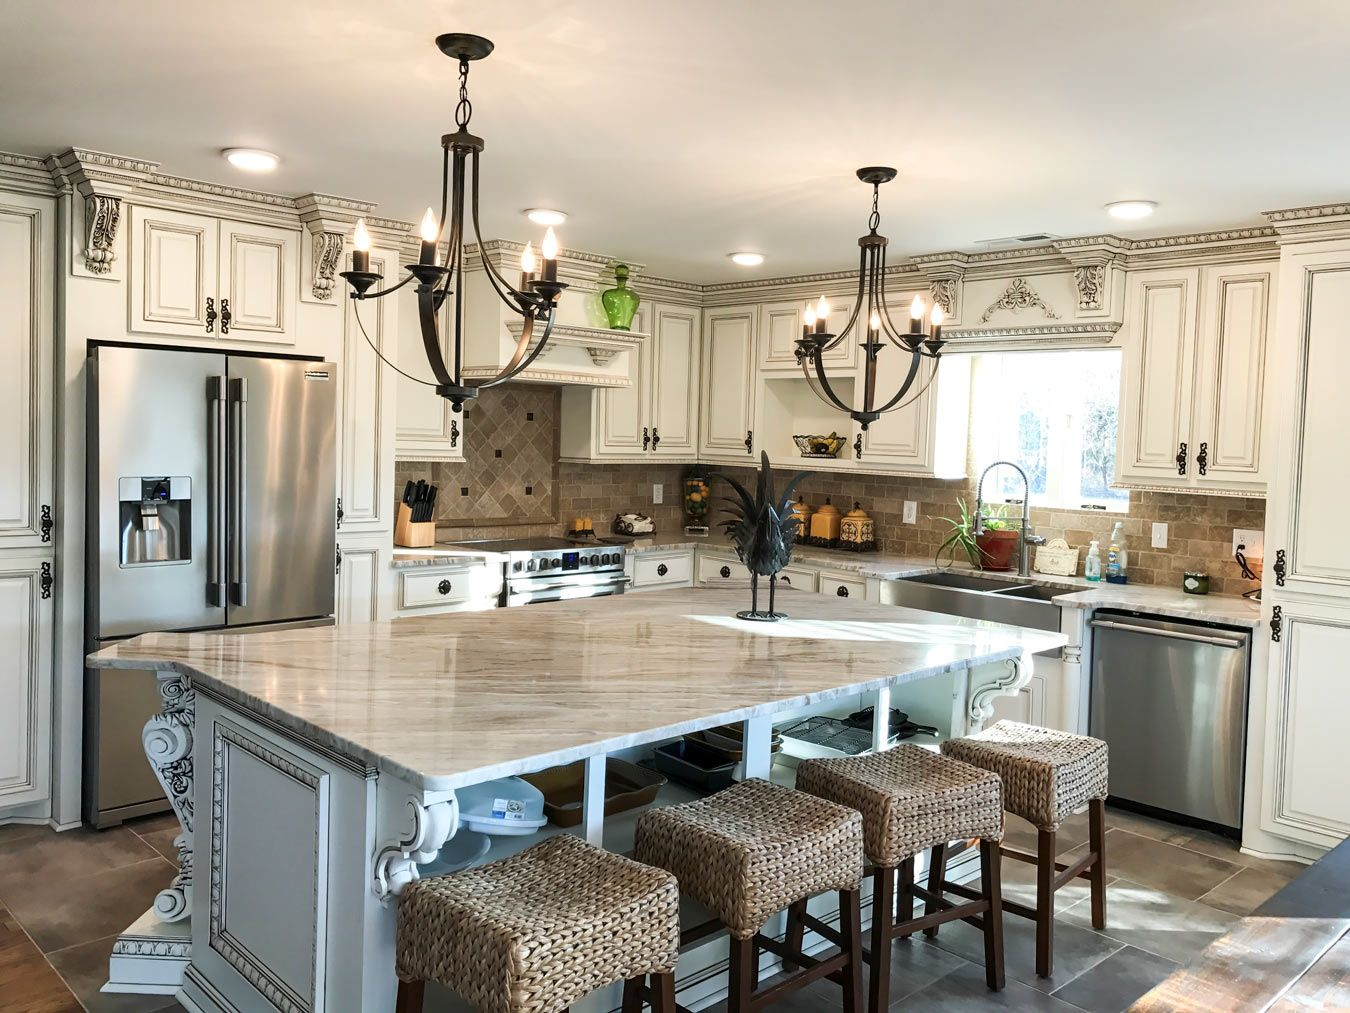 Kitchen Corbels Great For Islands And Cabinets White Kitchen Remodeling Elegant Kitchen Design Beautiful Kitchens